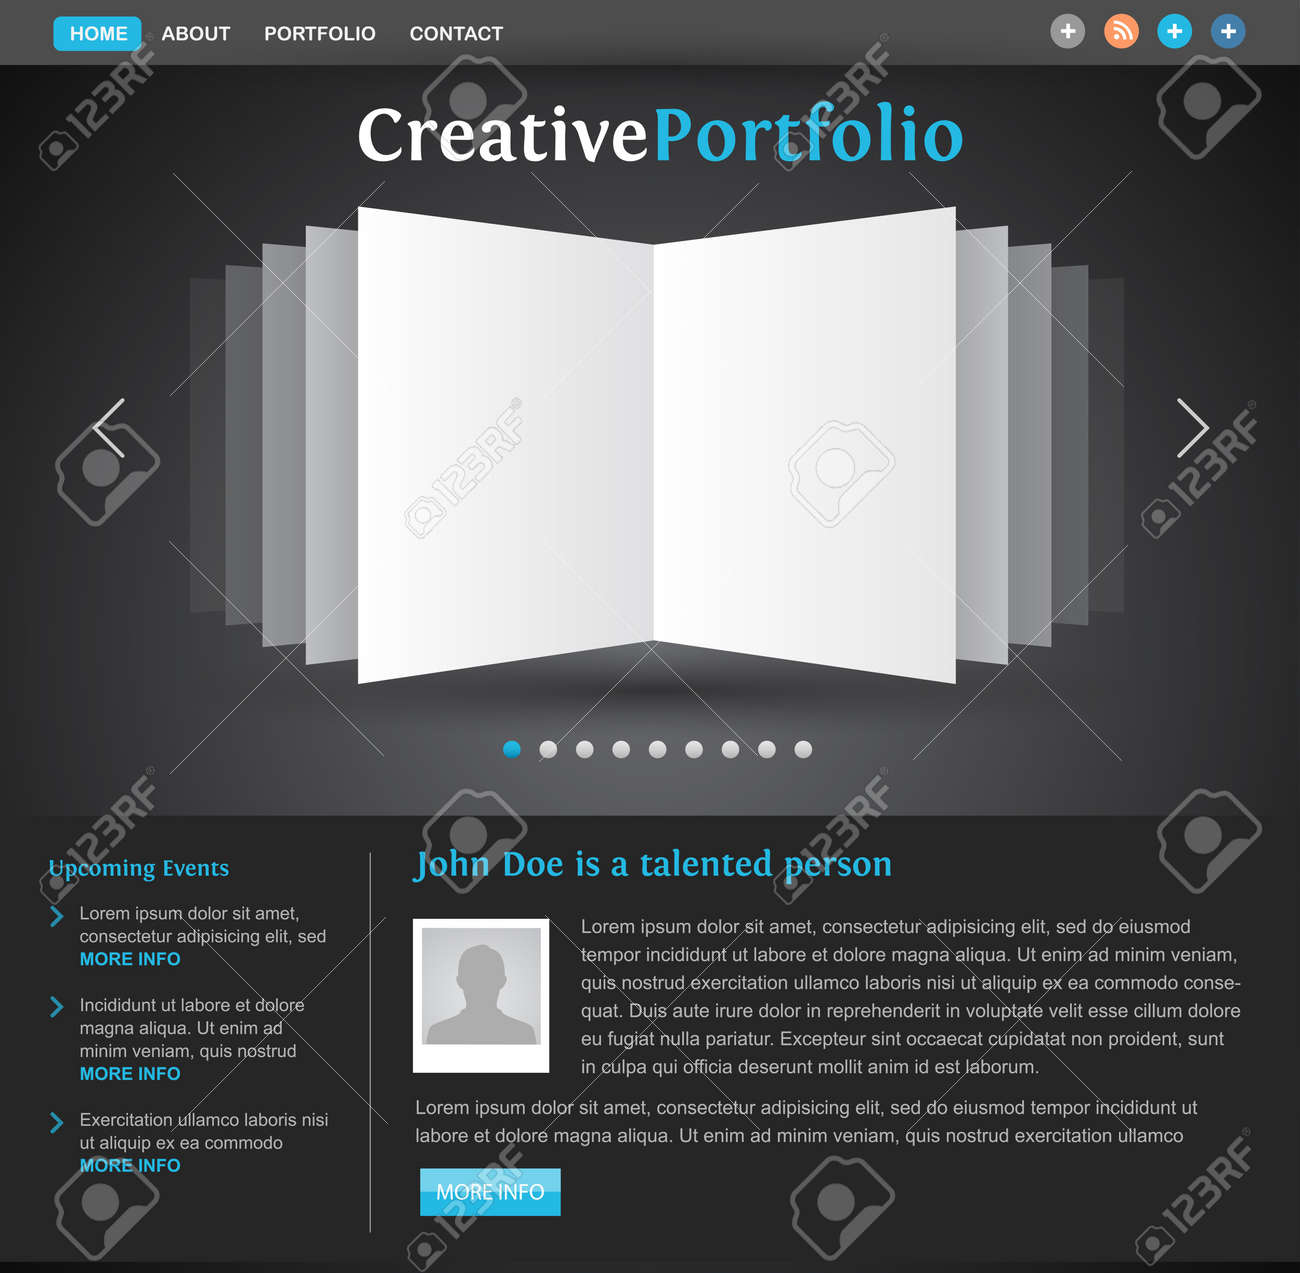 web design portfolio template book pages view creative layout